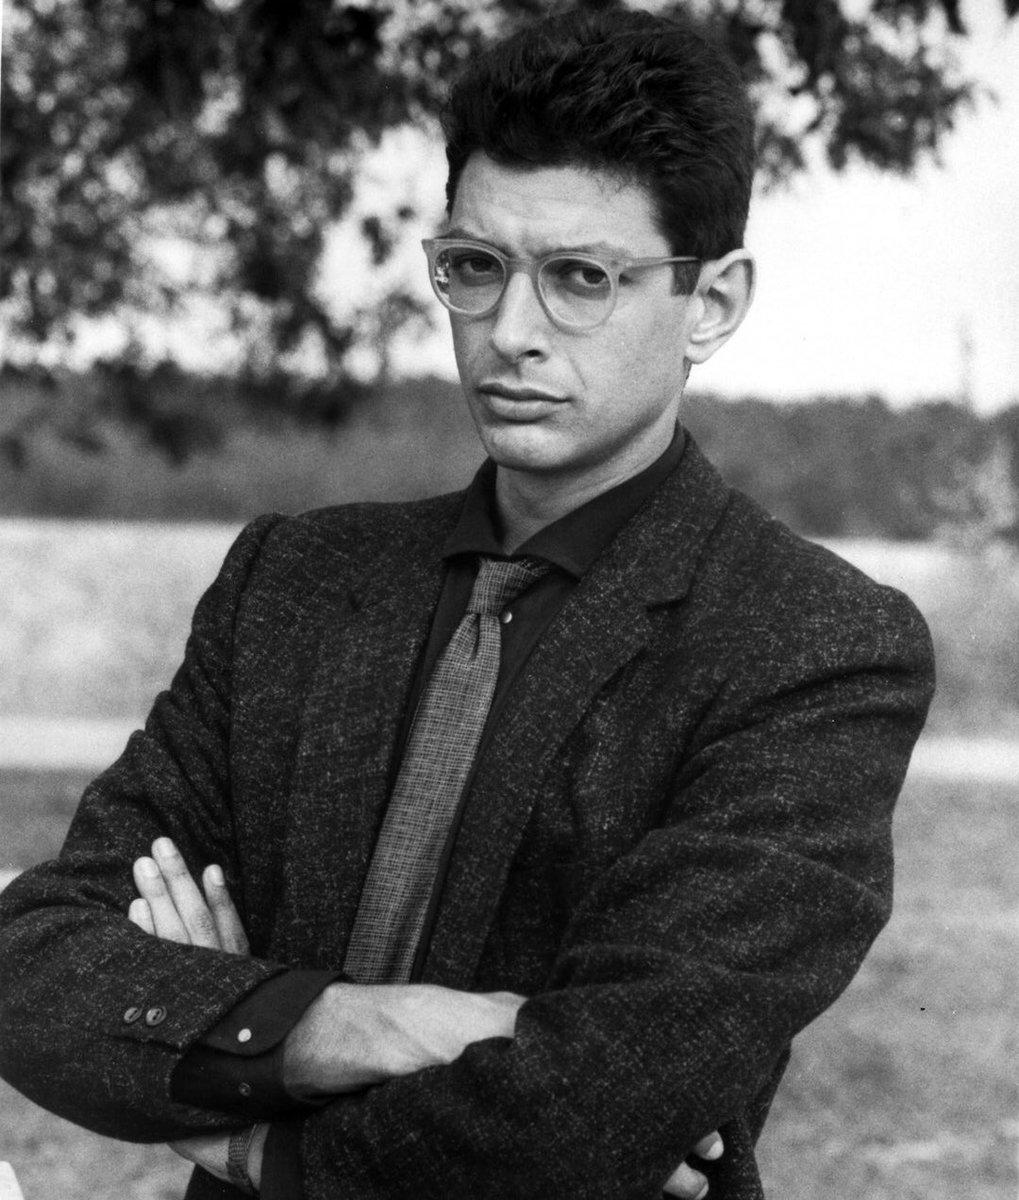 DfhE96dVQAAu4ef 20 Things You Never Knew About Jeff Goldblum